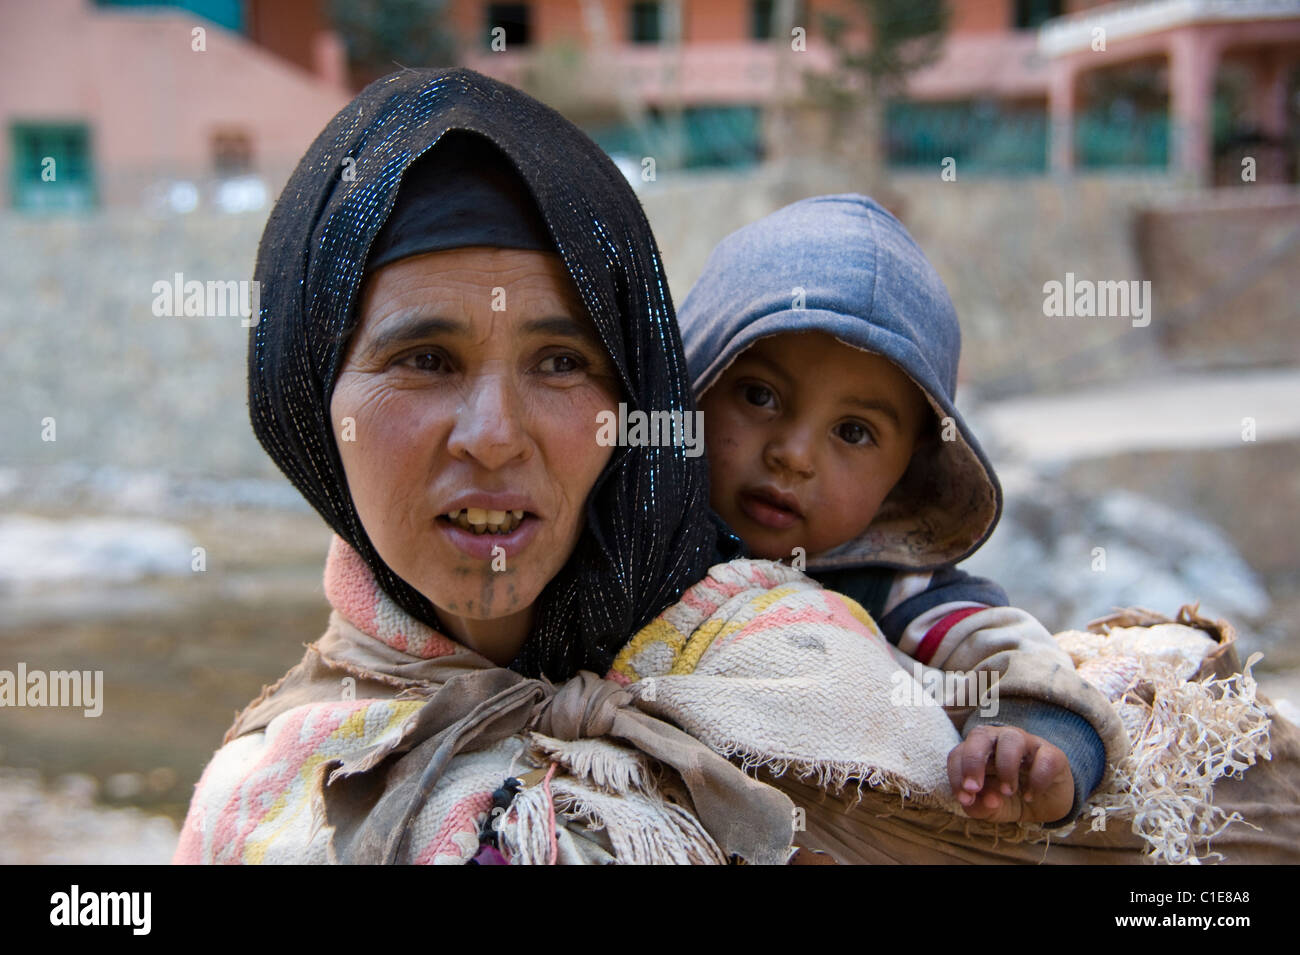 A Berber woman called Eesha and young child from the area of Todra Gorge in Morocco - Stock Image